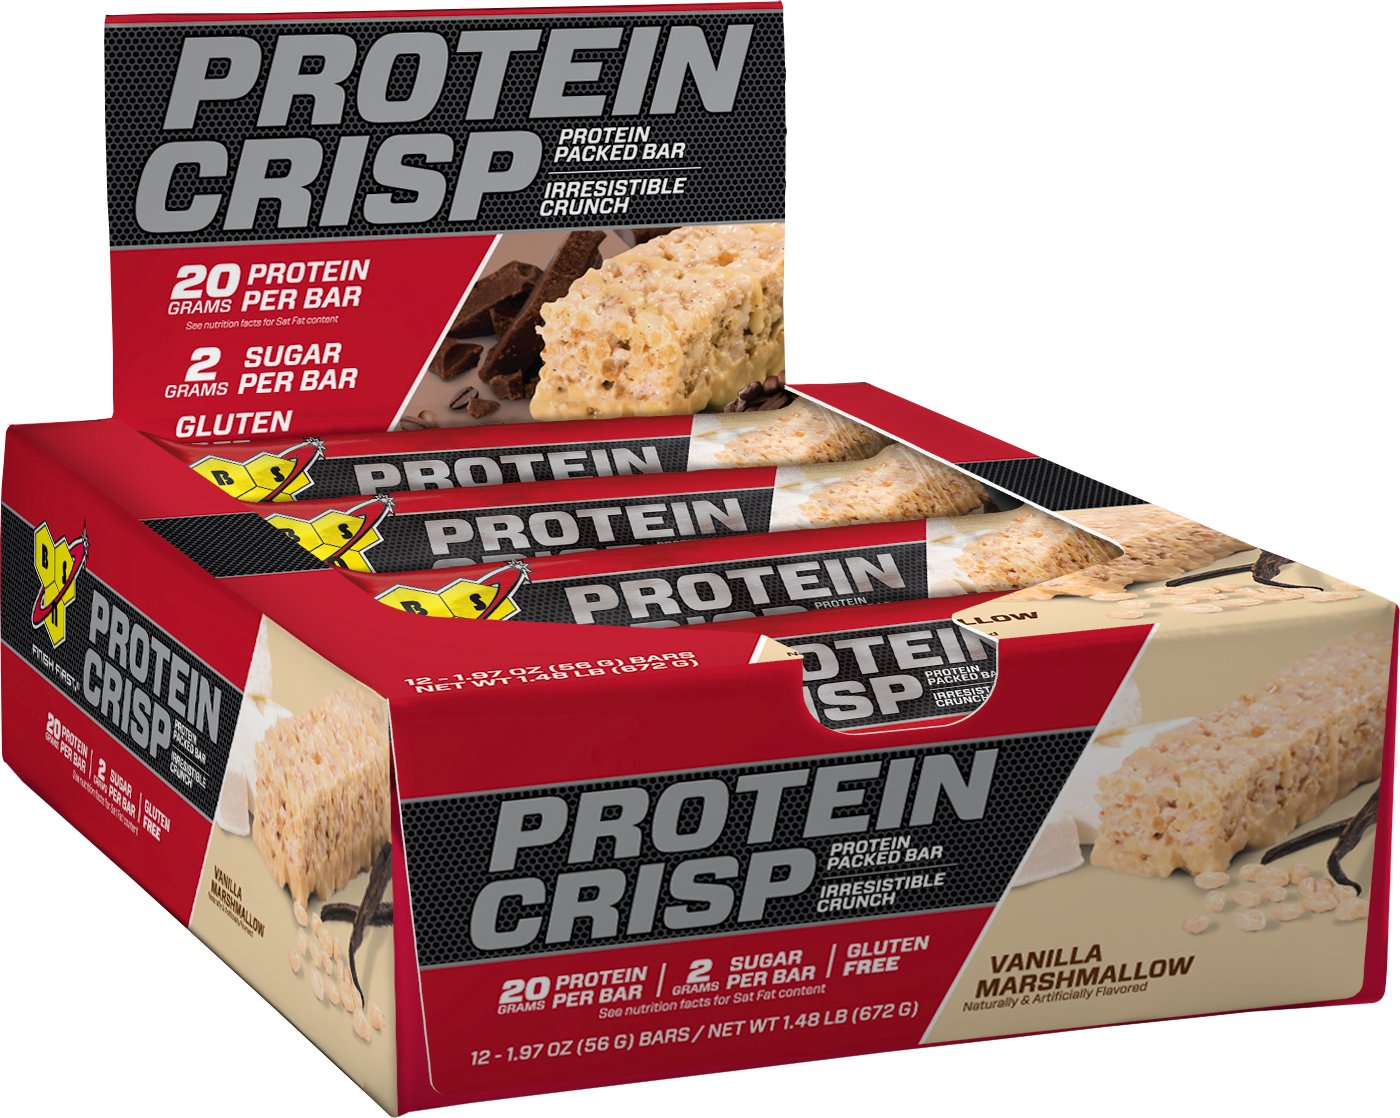 BSN Protein Crisp Bar by Syntha-6, Low Sugar Meal Replacement Whey Protein Bar, 20g of Protein, Vanilla Marshmallow, 12 Count (Packaging may vary)